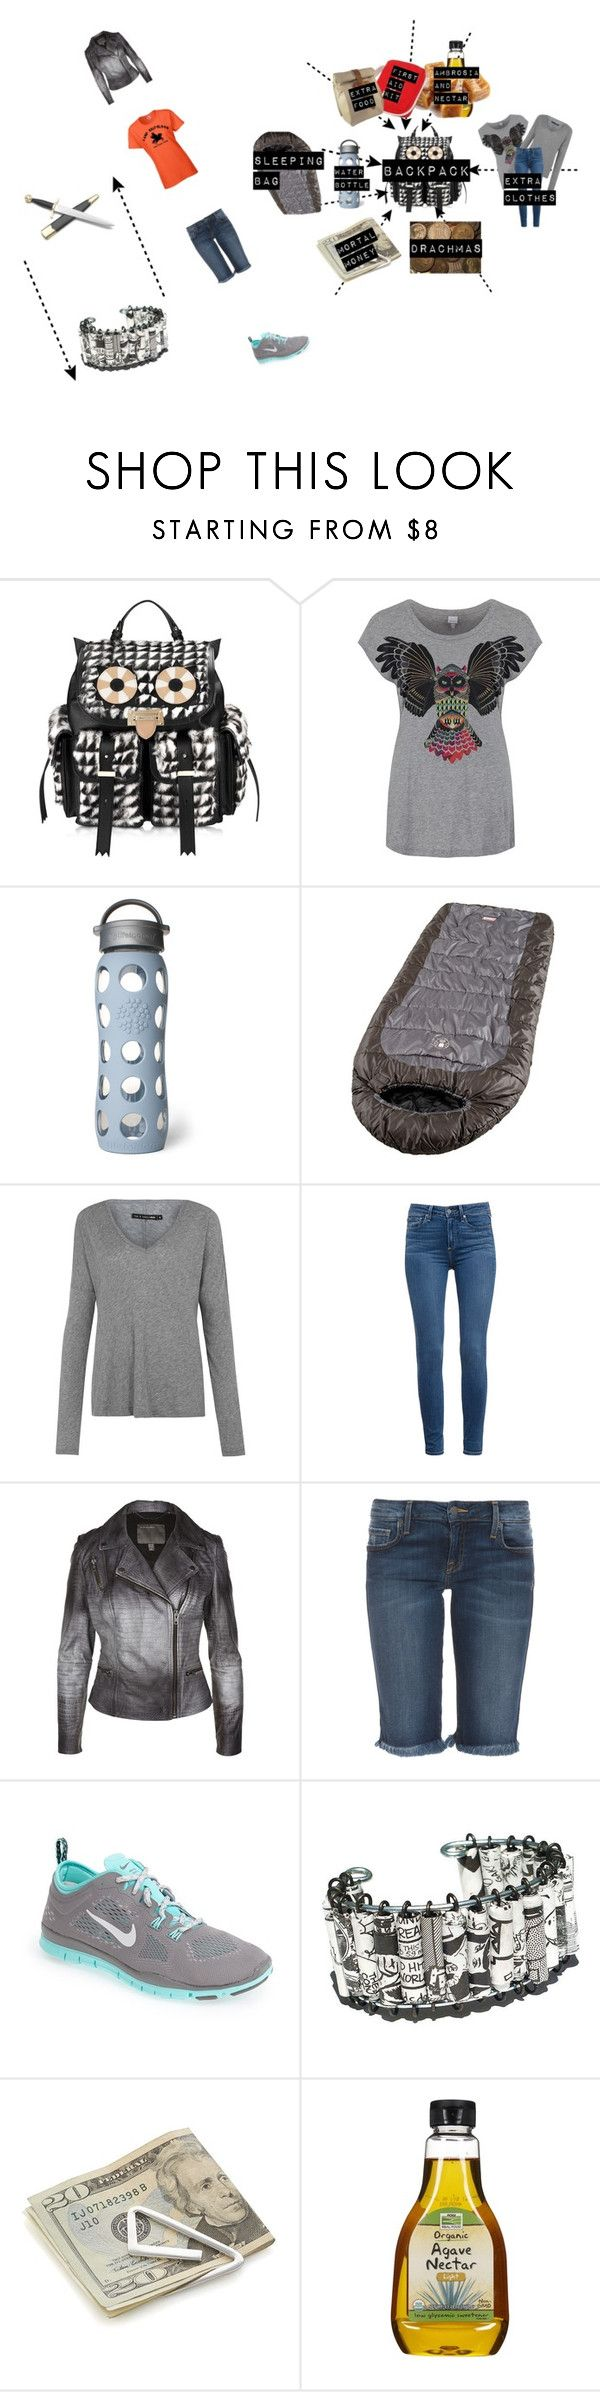 """""""Daughter of Athena:Quest"""" by nyssa-fire ❤ liked on Polyvore featuring Aspinal of London, Bench, Lifefactory, Coleman, rag & bone/JEAN, Paige Denim, MuuBaa, Genetic Denim, NIKE and Crate and Barrel"""